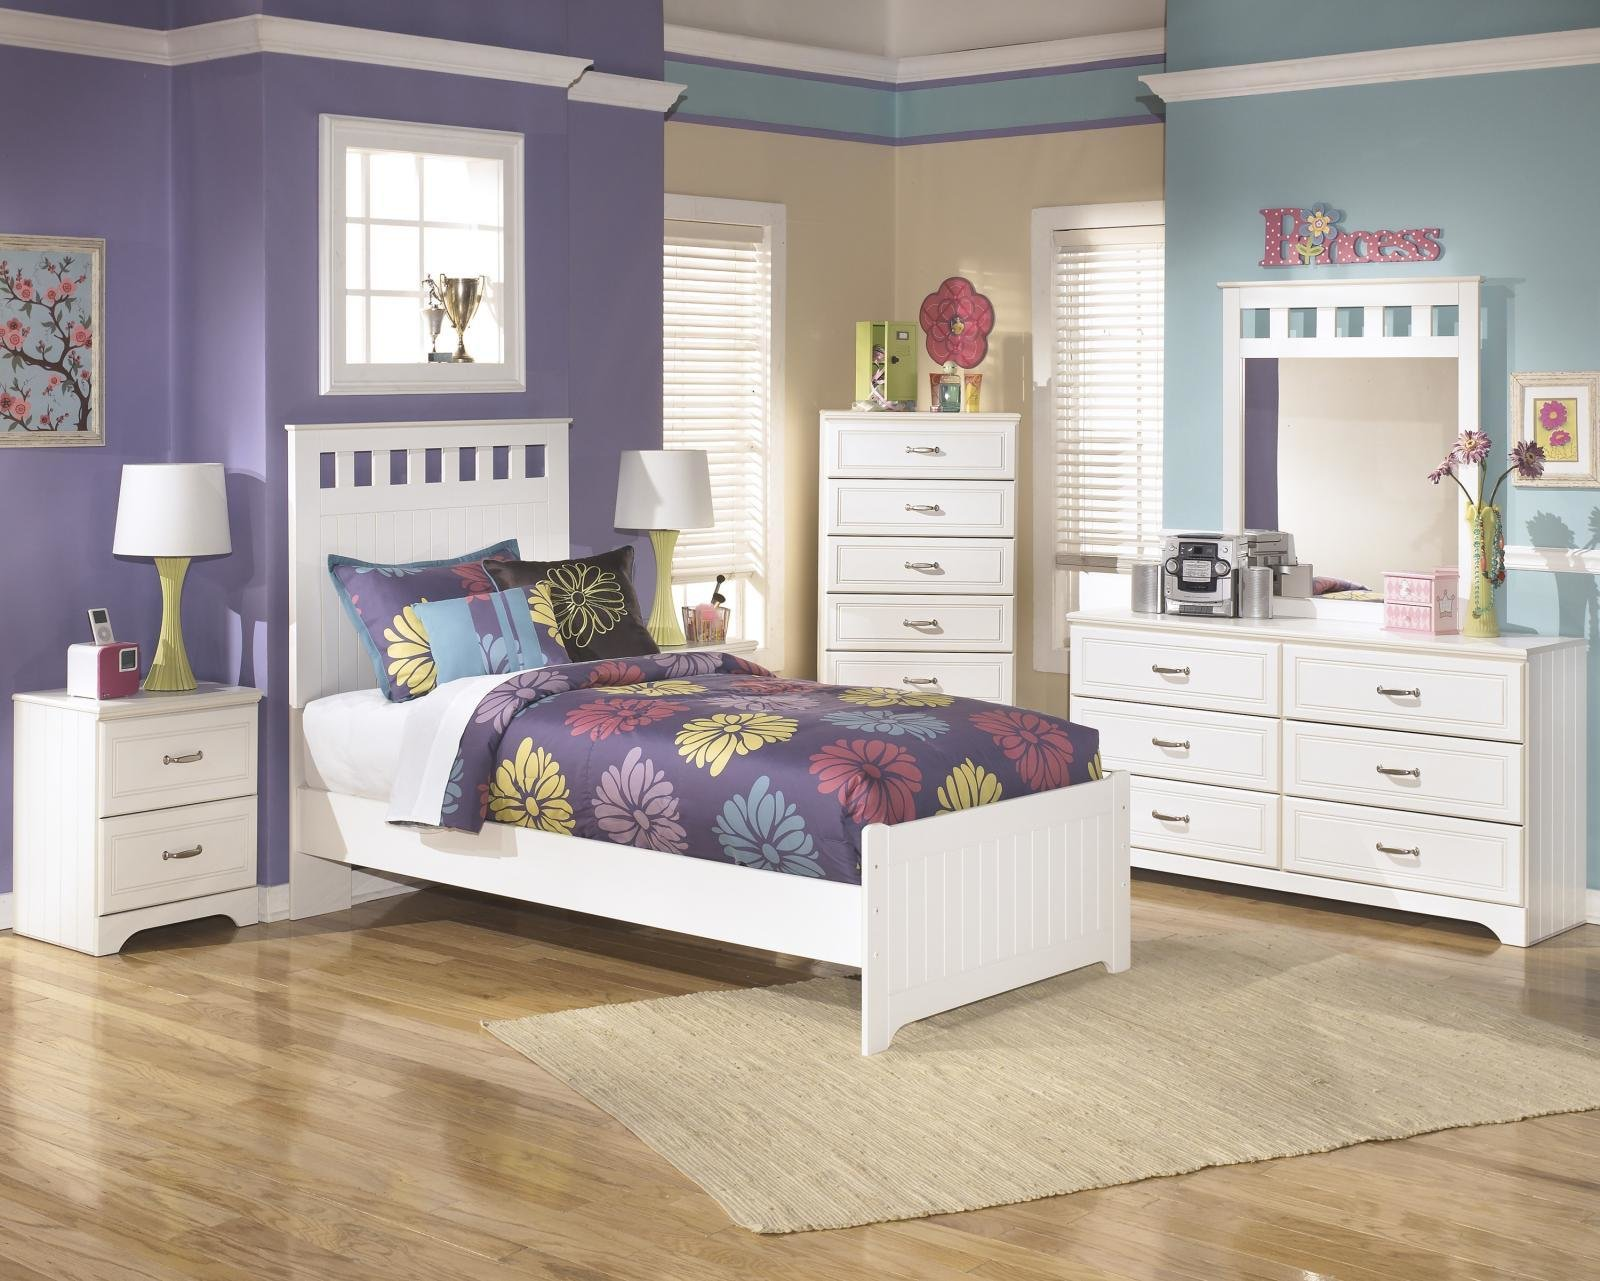 Best Ashley Lulu B102 Twin Size Panel Bedroom Set 6Pcs In White Casual Style Ebay With Pictures